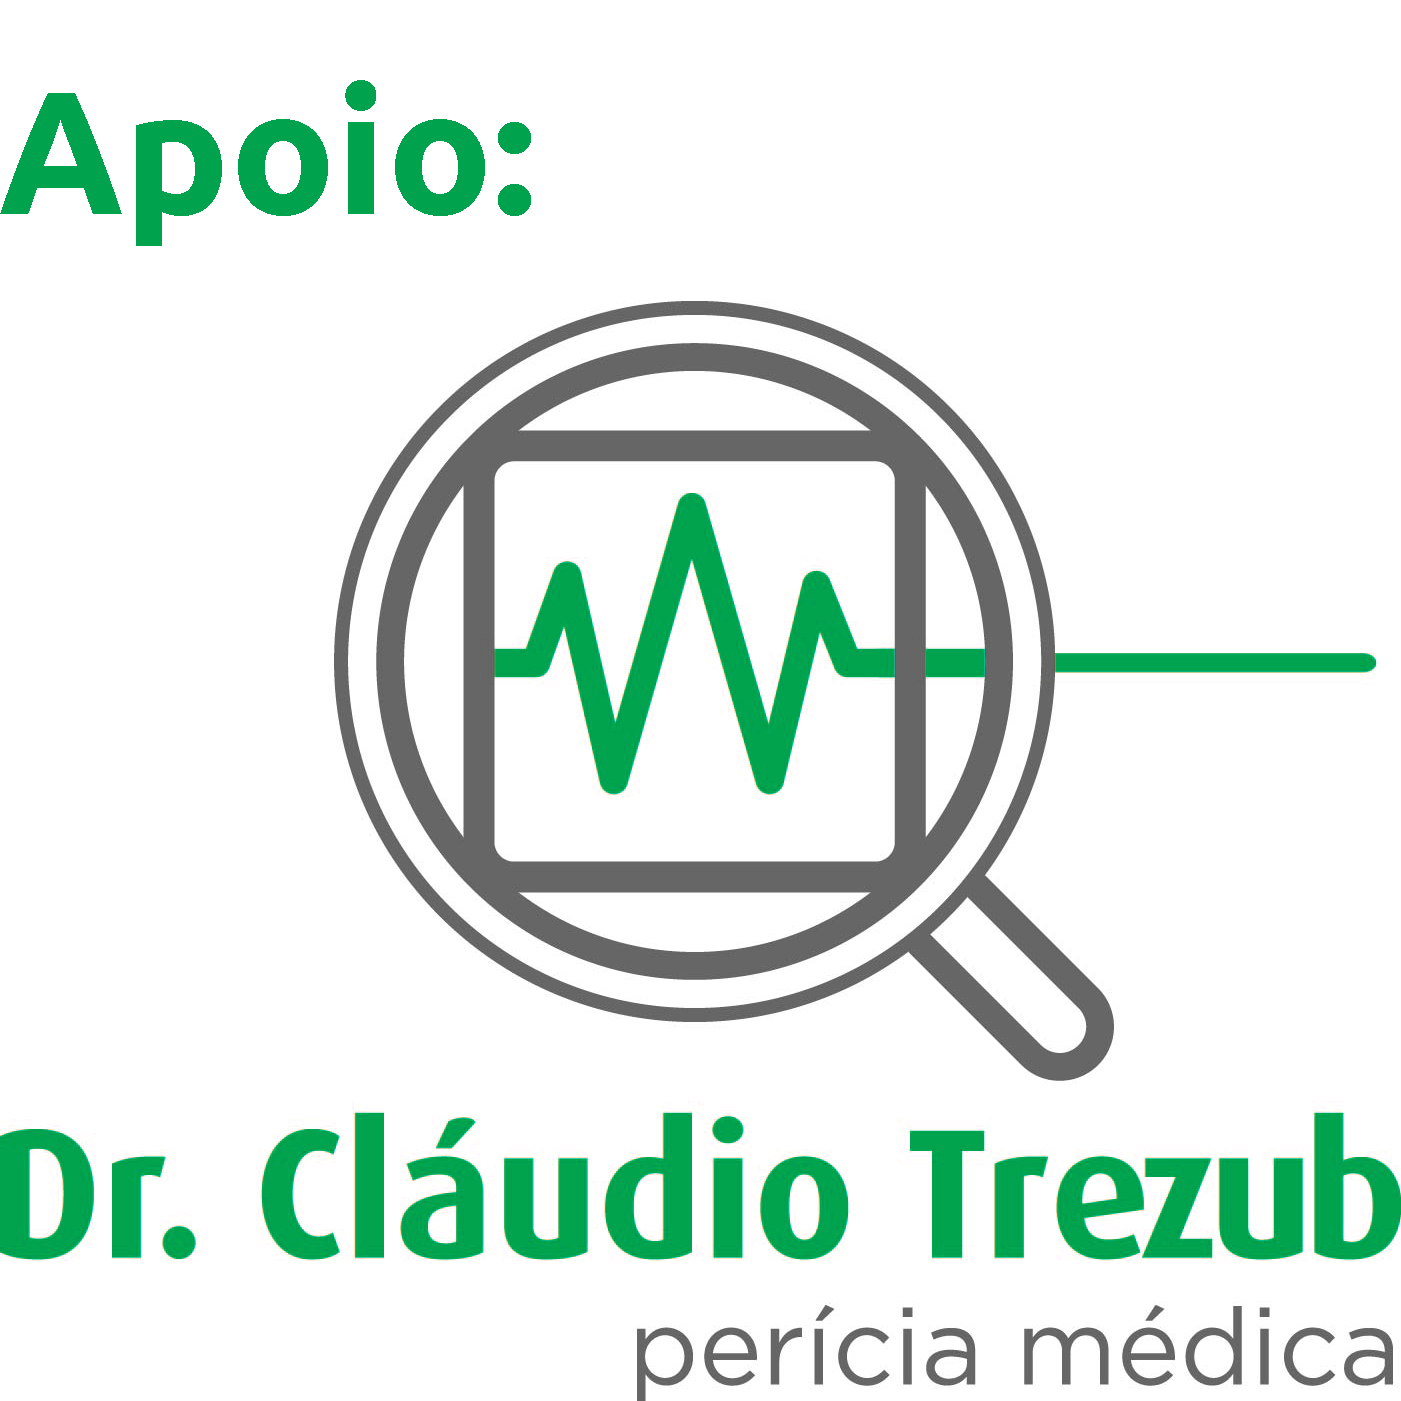 Blog Claudio Trezub